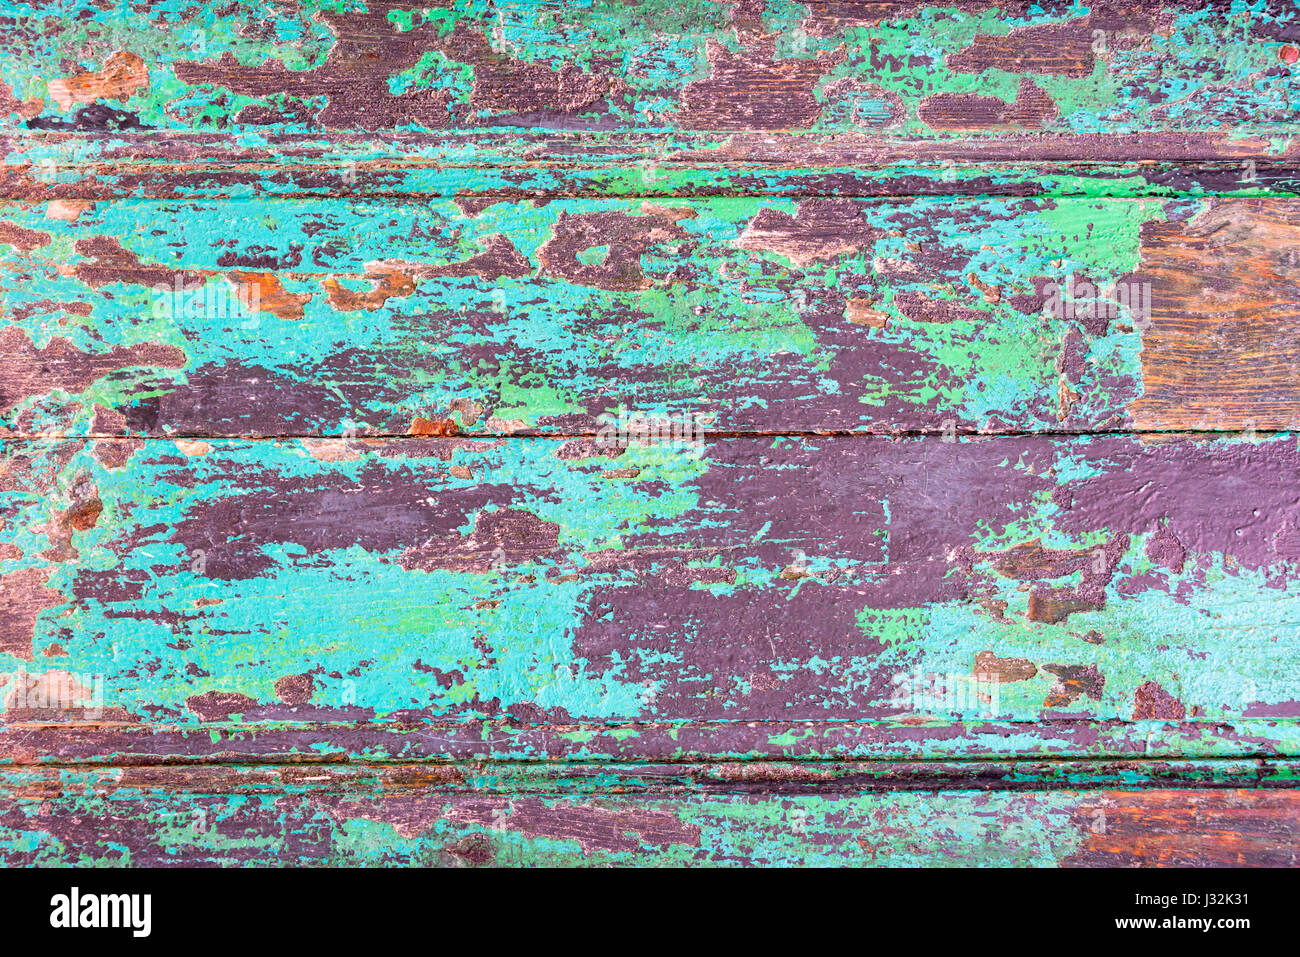 Abstract grunge wood planks texture background with peeling blue paint - Stock Image